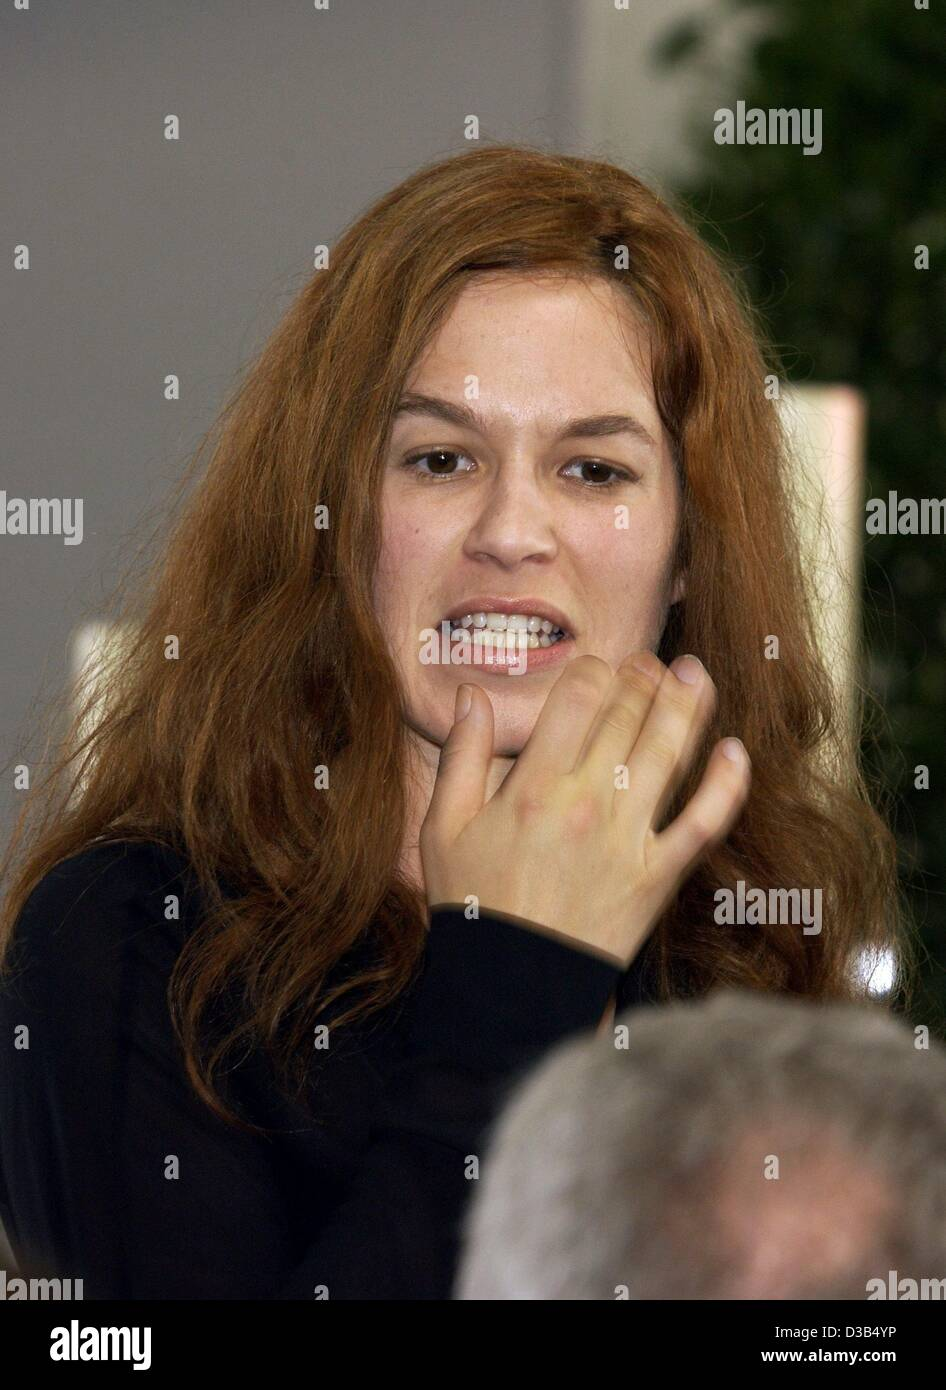 (dpa) - German actress Franka Potente ('Lola Runs', 'The ...